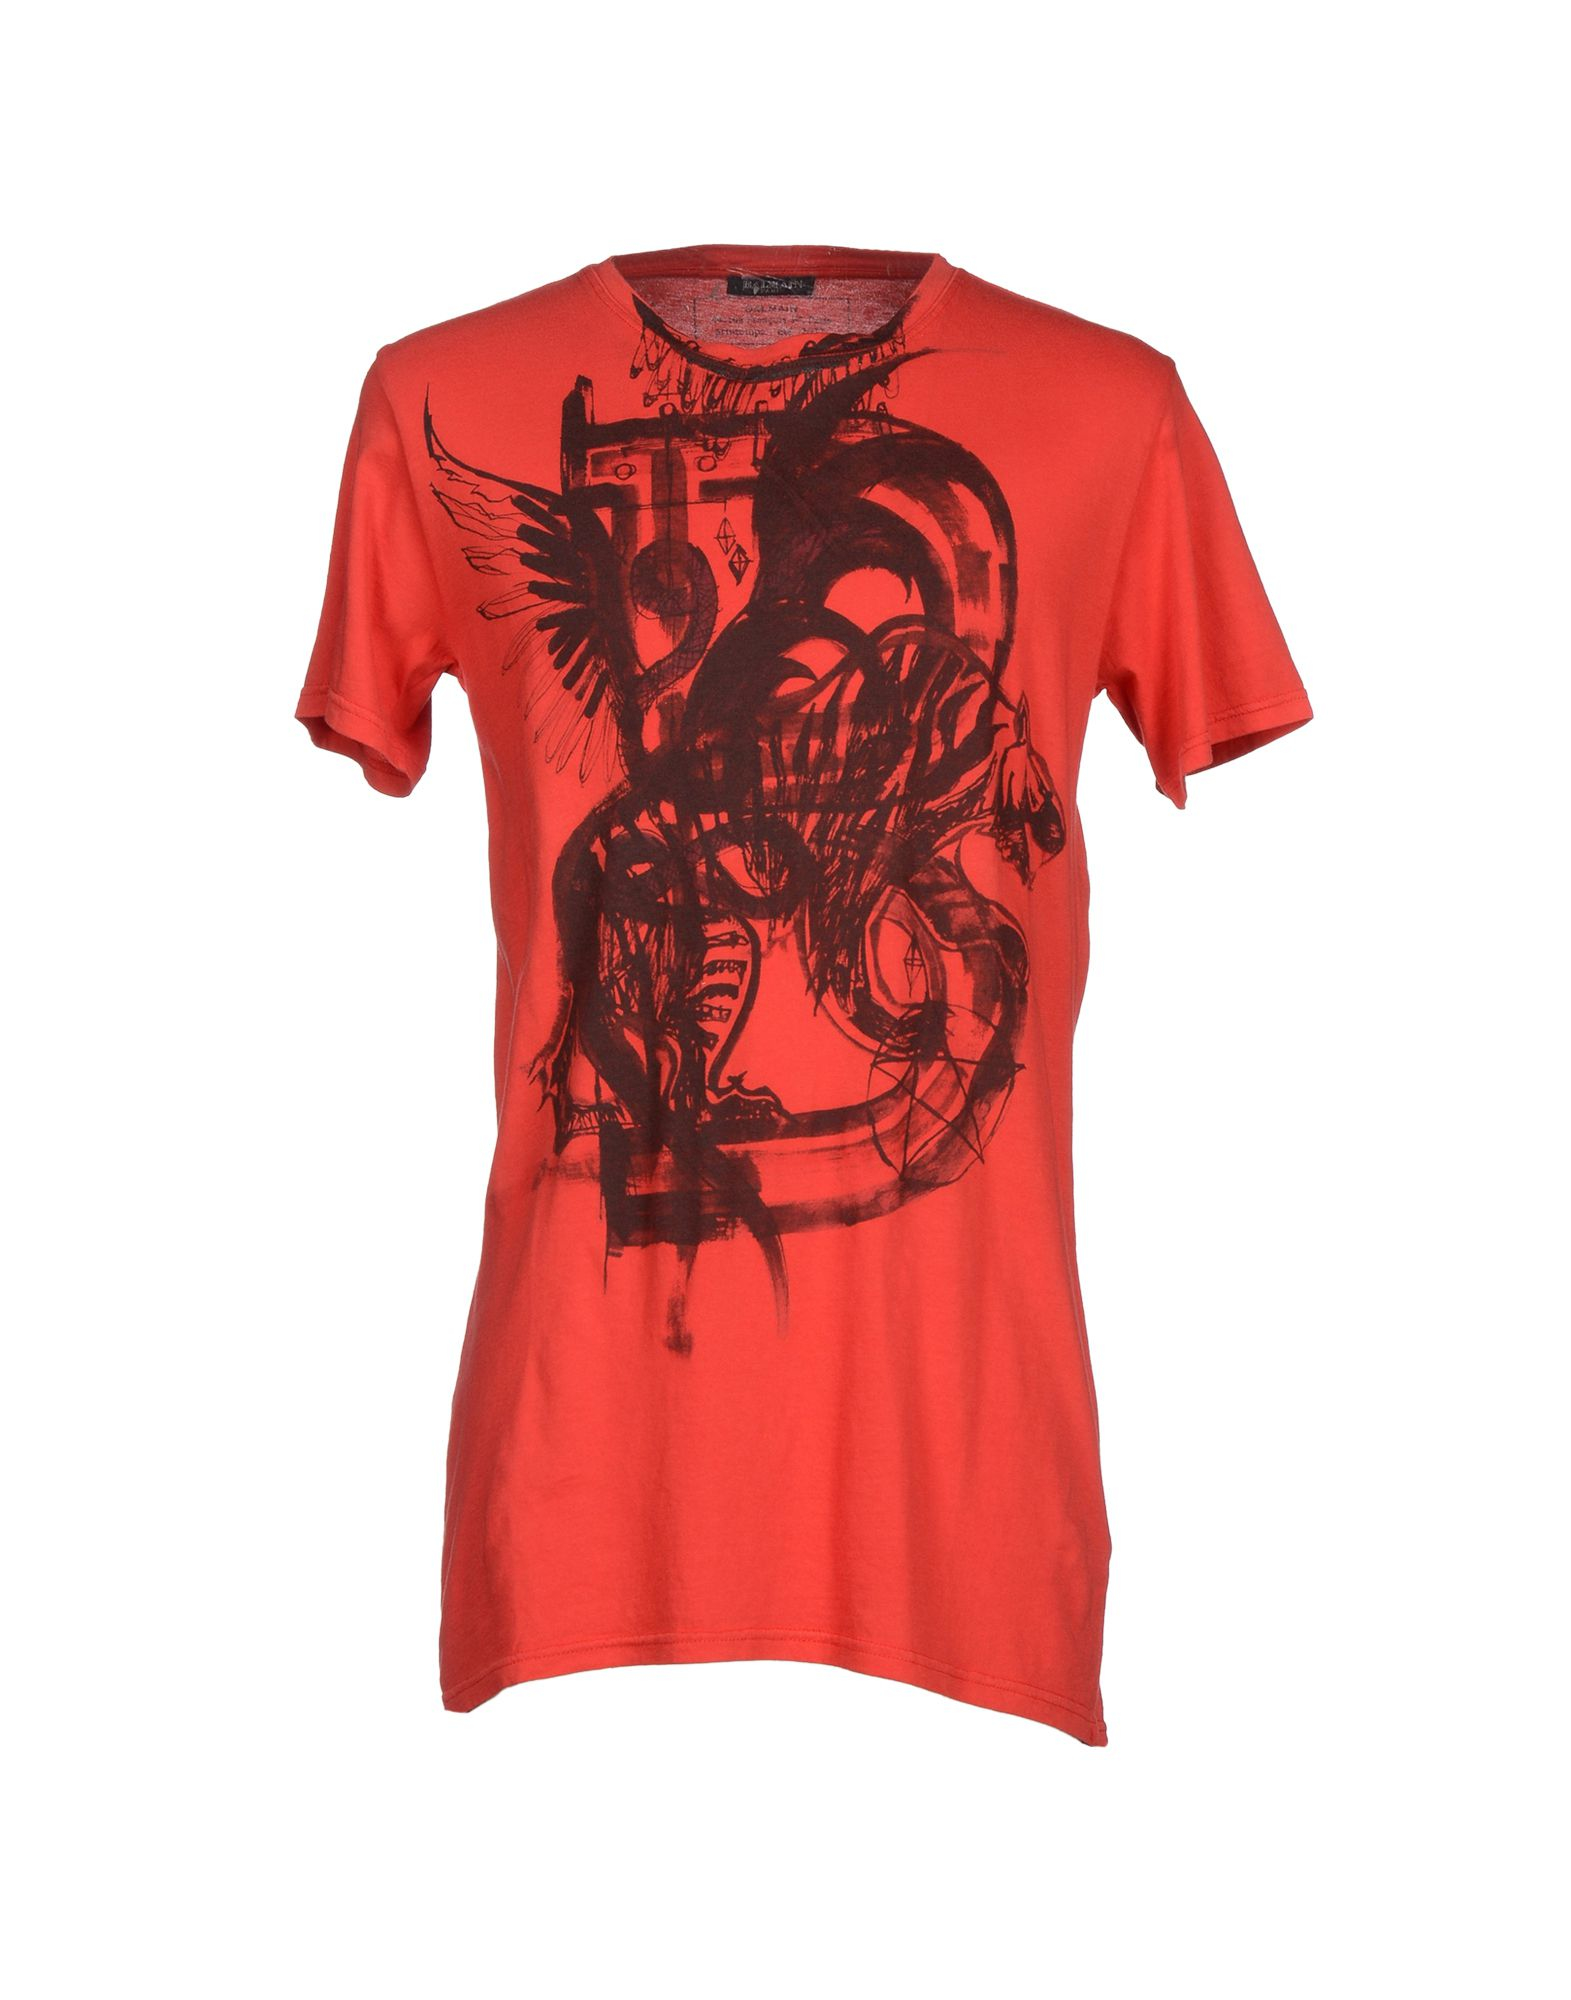 balmain t shirt in red for men lyst. Black Bedroom Furniture Sets. Home Design Ideas